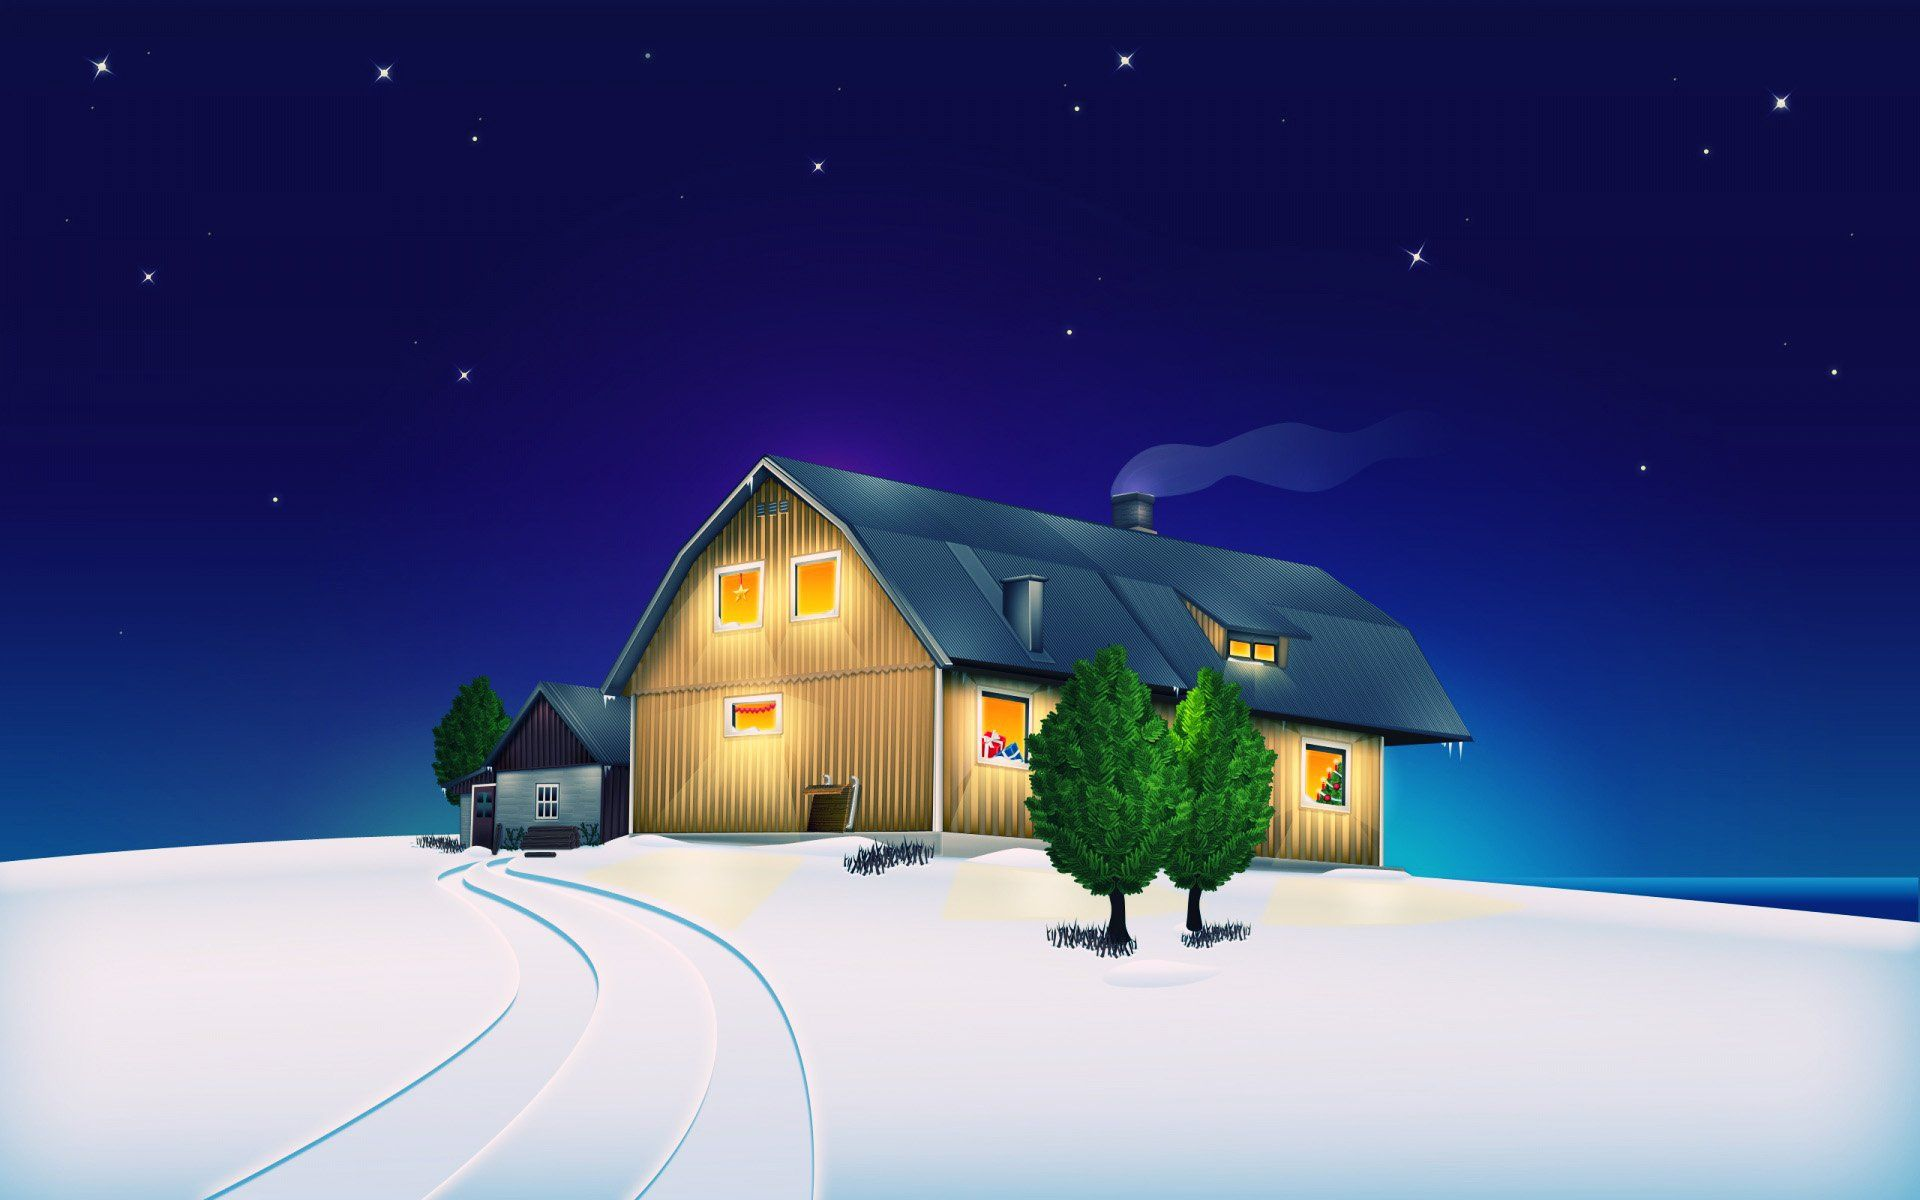 Animated Christmas House Wallpaper